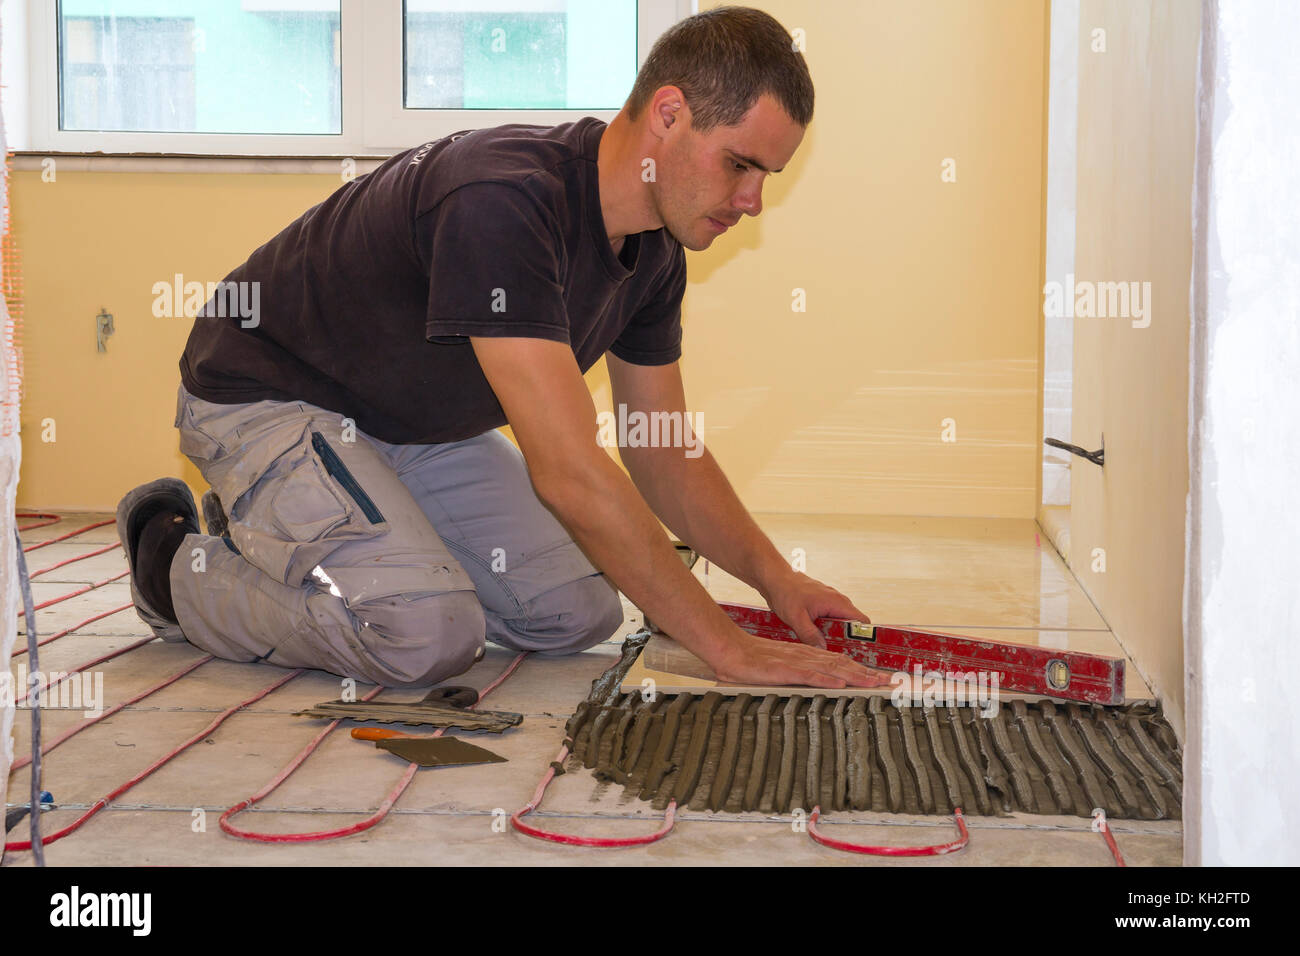 Worker installing floor tiles  Ceramic tiles and tools for